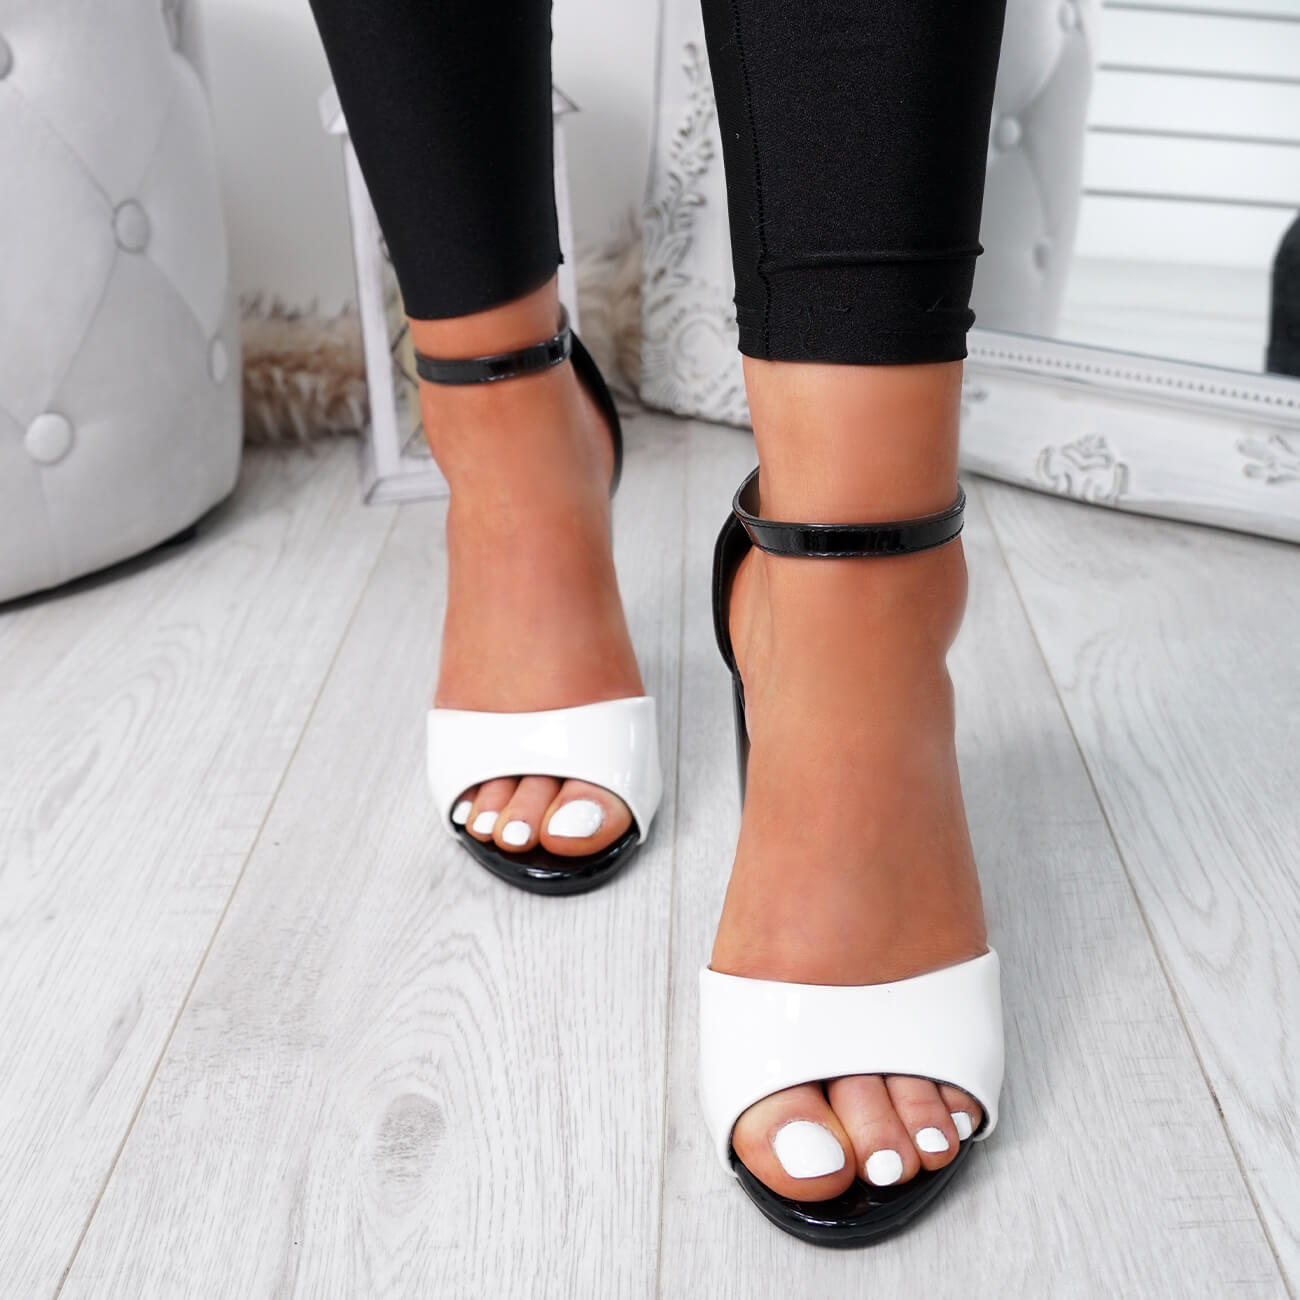 WOMENS-LADIES-ANKLE-STRAP-HIGH-BLOCK-HEEL-SANDALS-PEEP-TOE-OFFICE-CASUAL-SHOES thumbnail 27